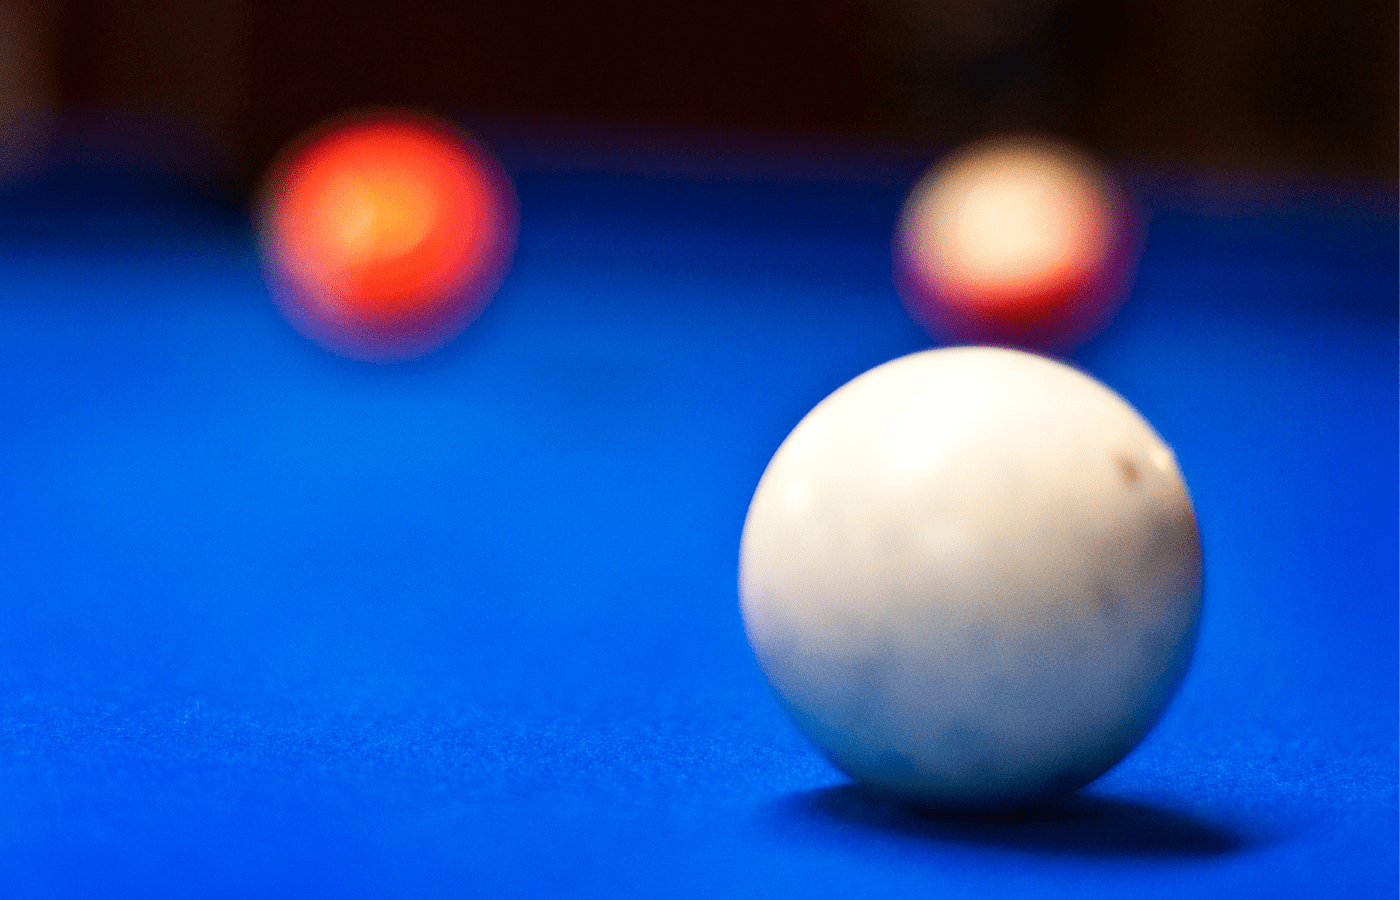 how to get chalk marks off a cue ball